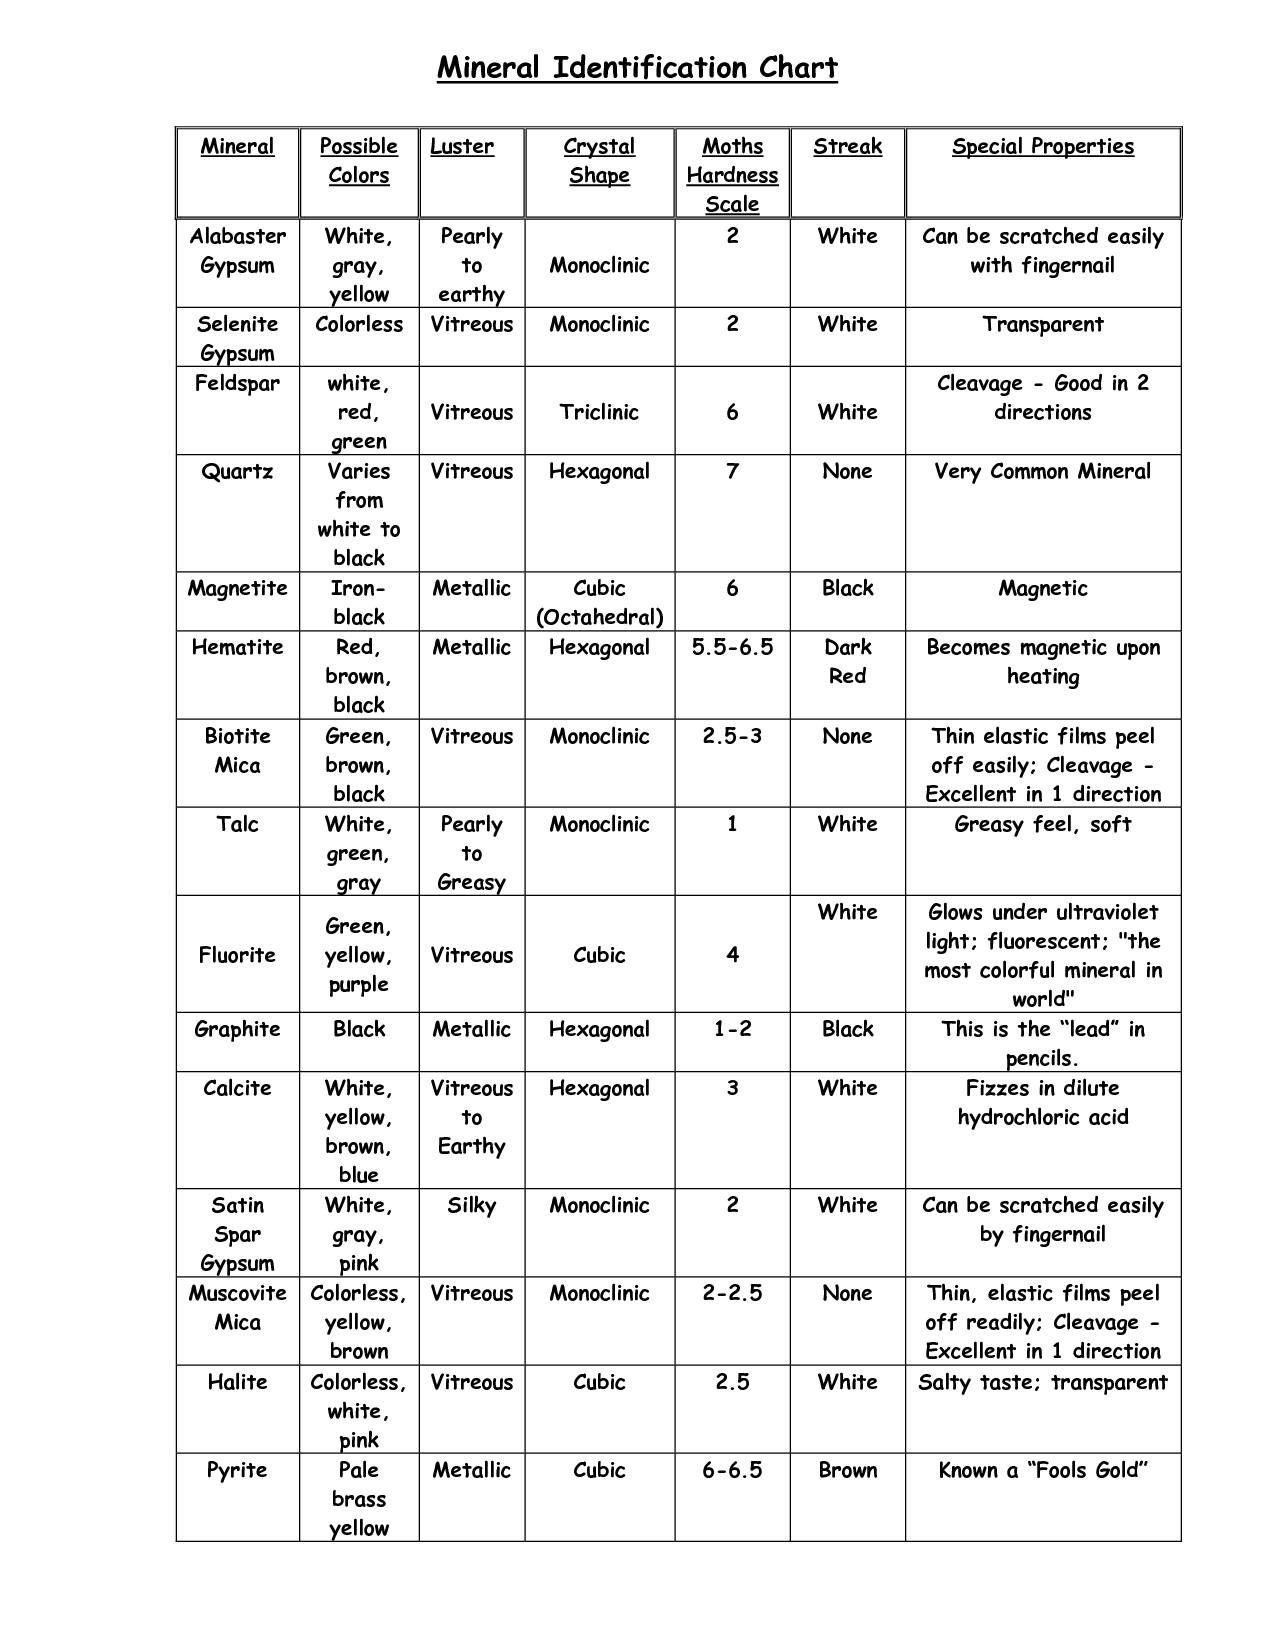 Mineral Identification Worksheet Answers